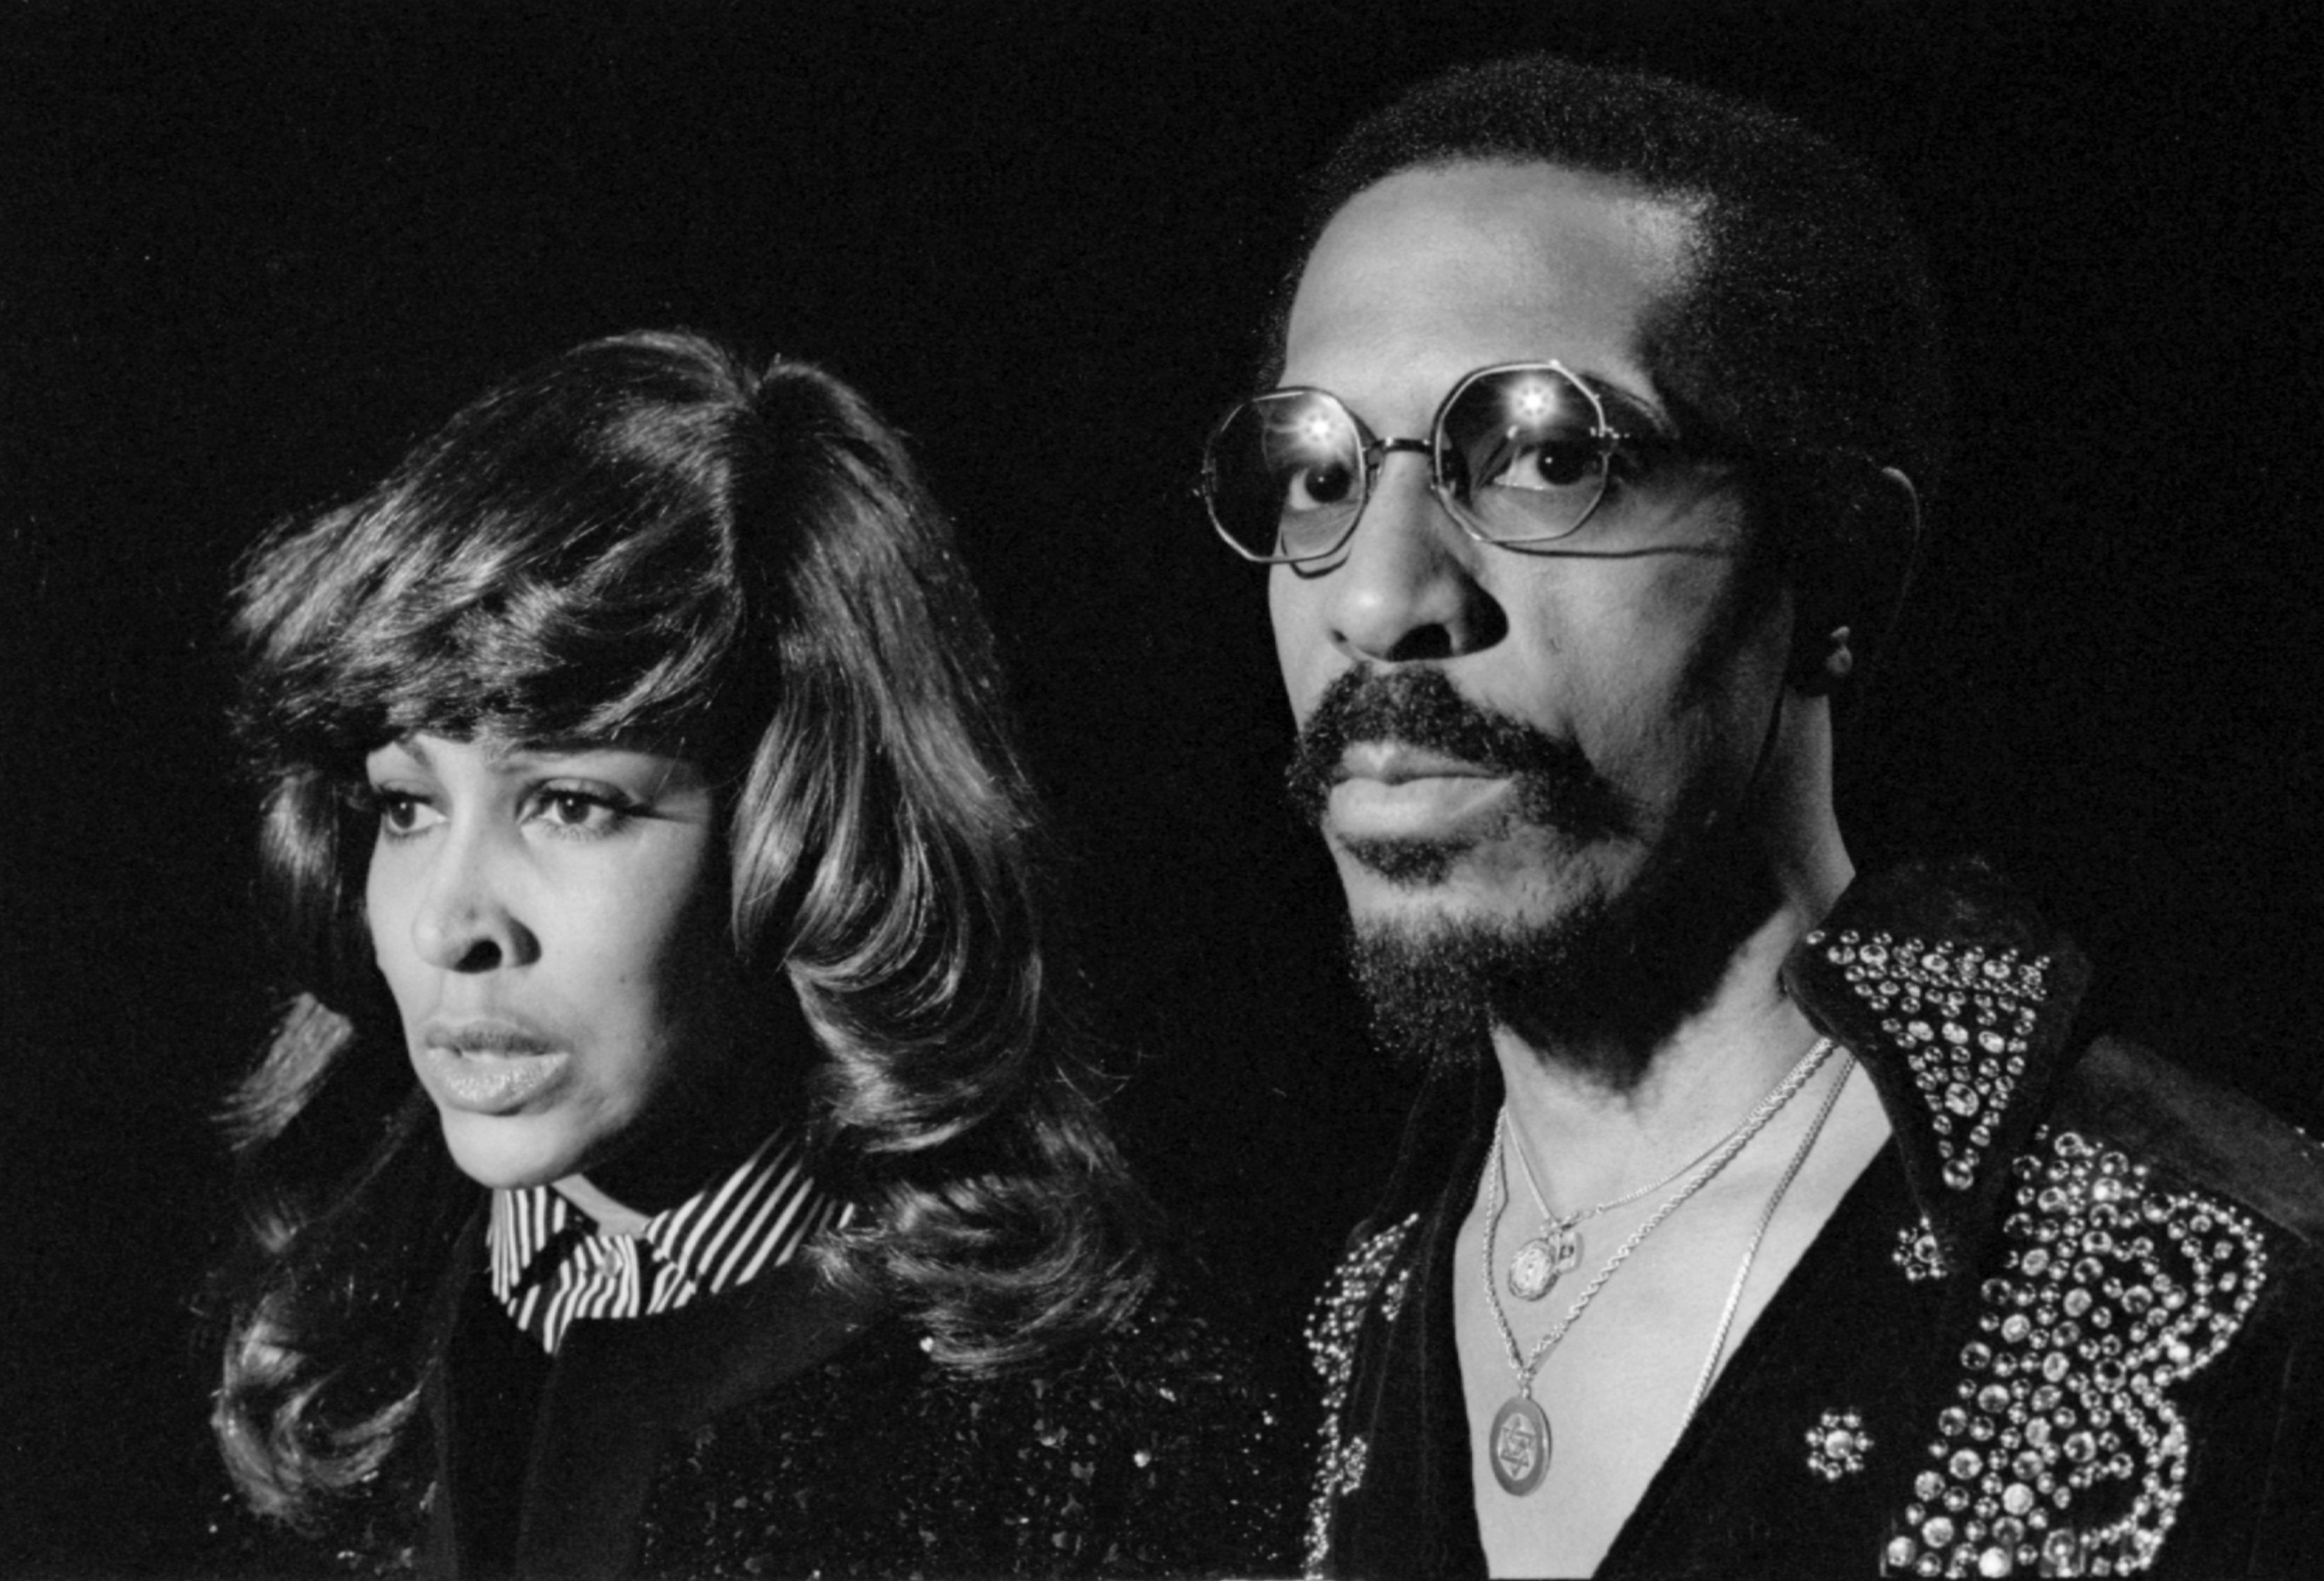 Ike and Tina Turner in 1975